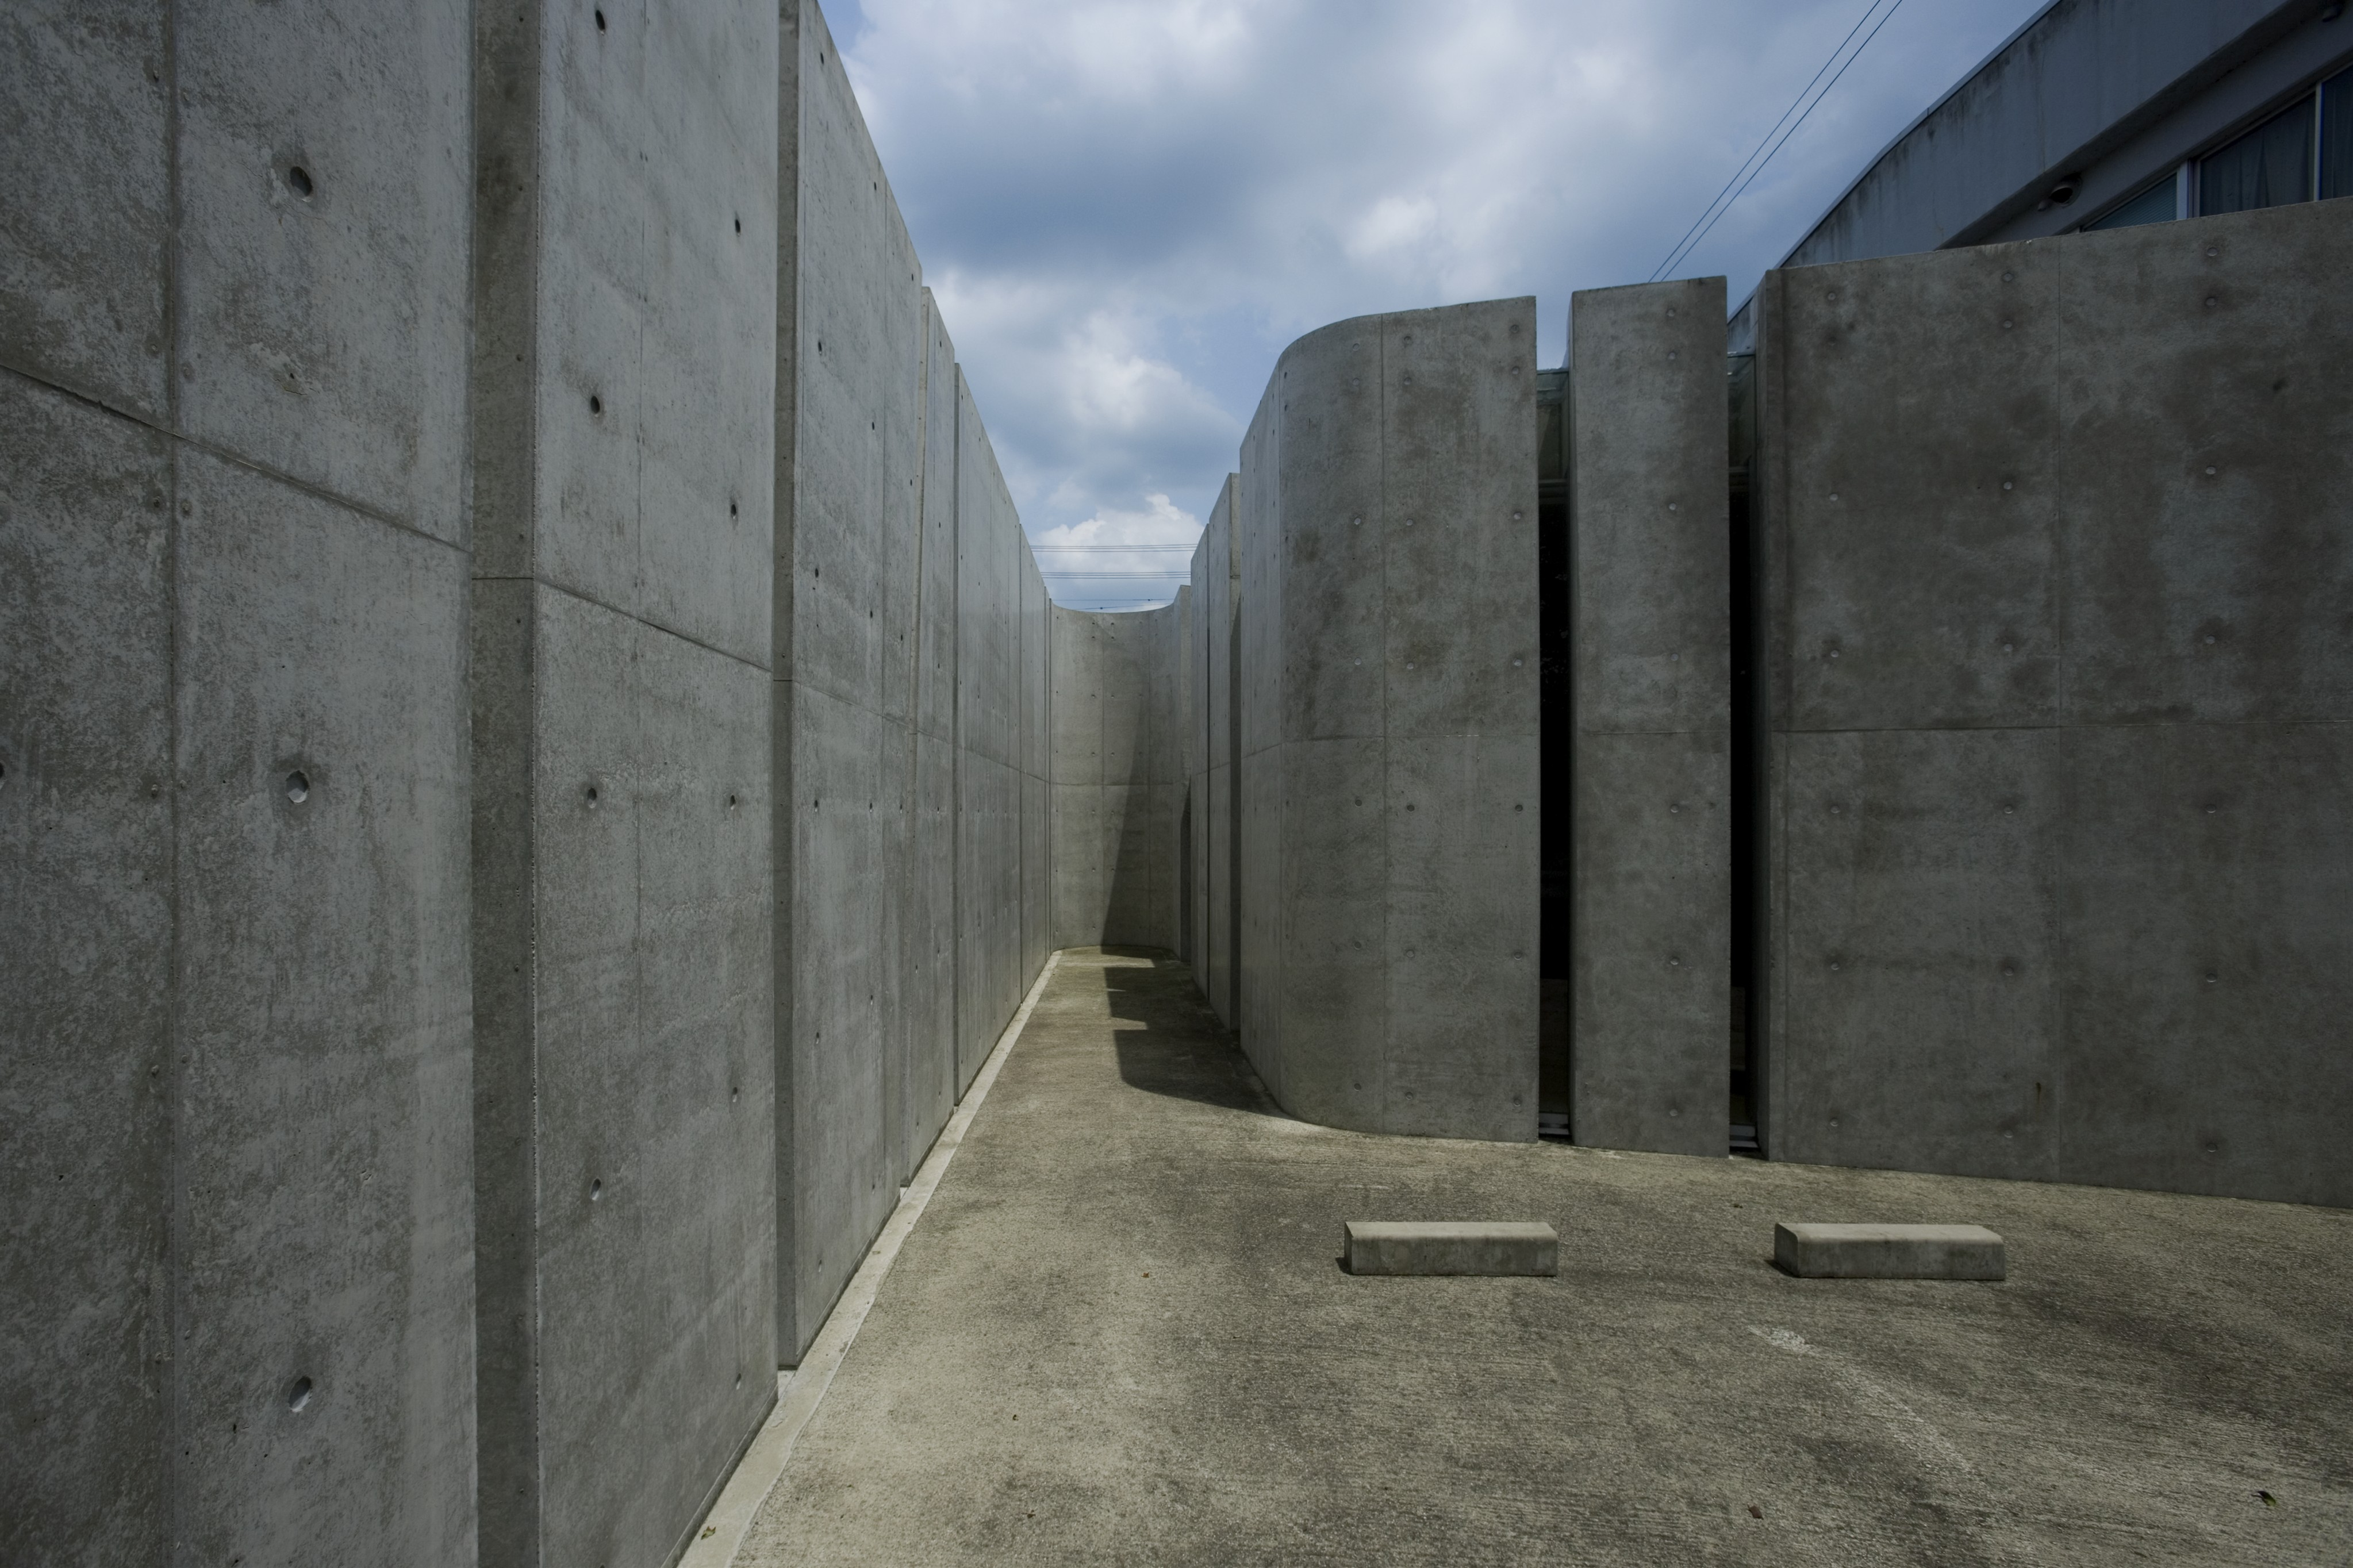 The curved, monolithic appearance of the walls are neatly broken up by both vertical and angled slits.